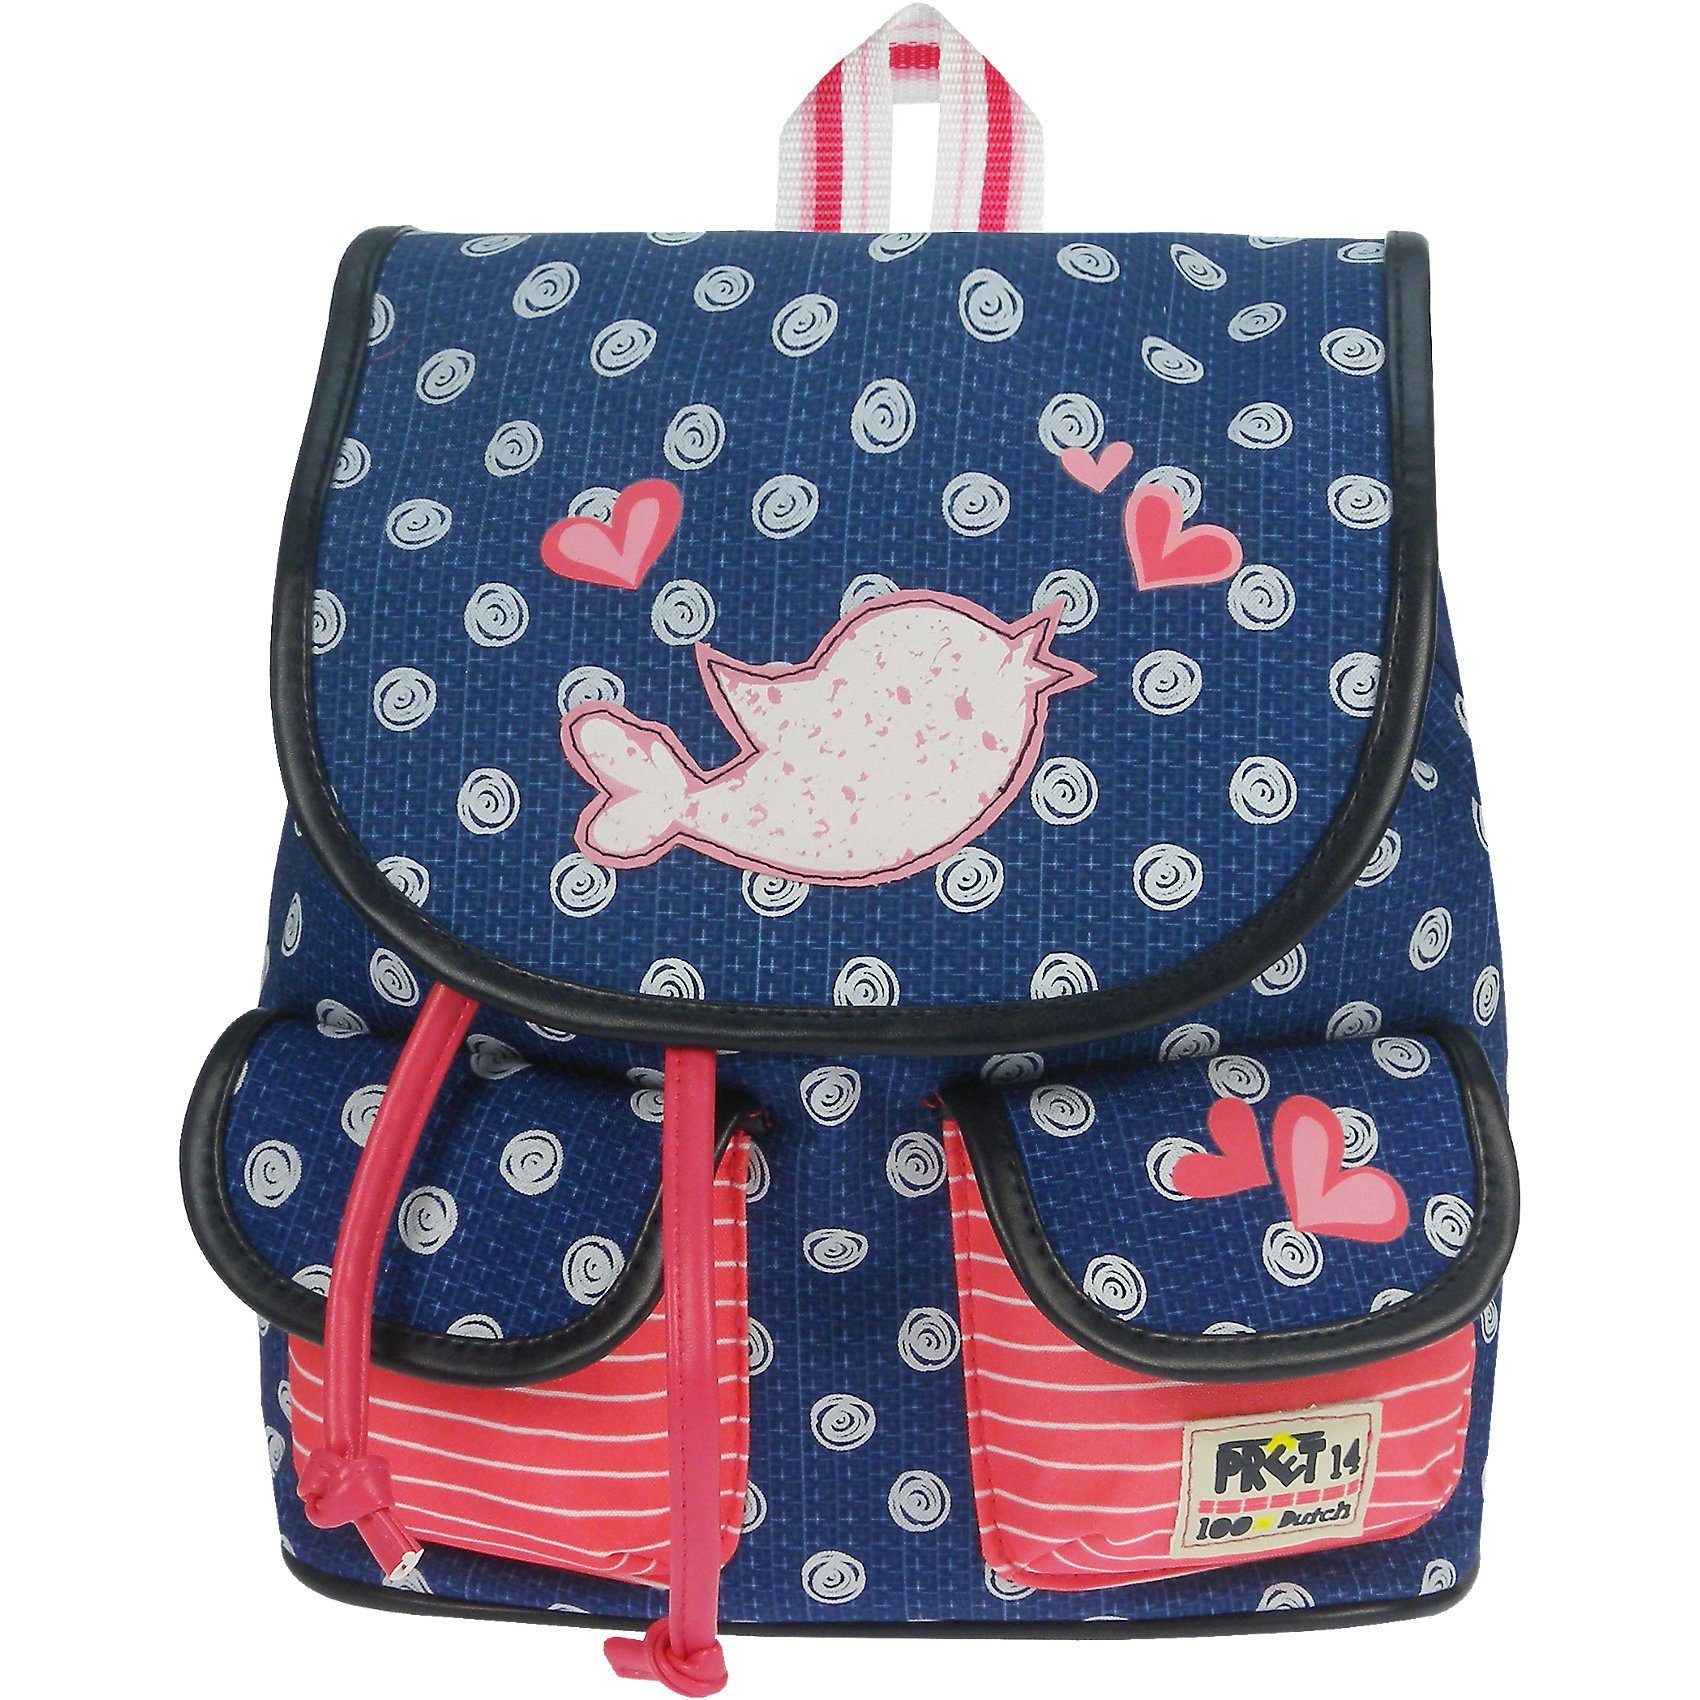 Vadobag Kinderrucksack PRET Denimized blau